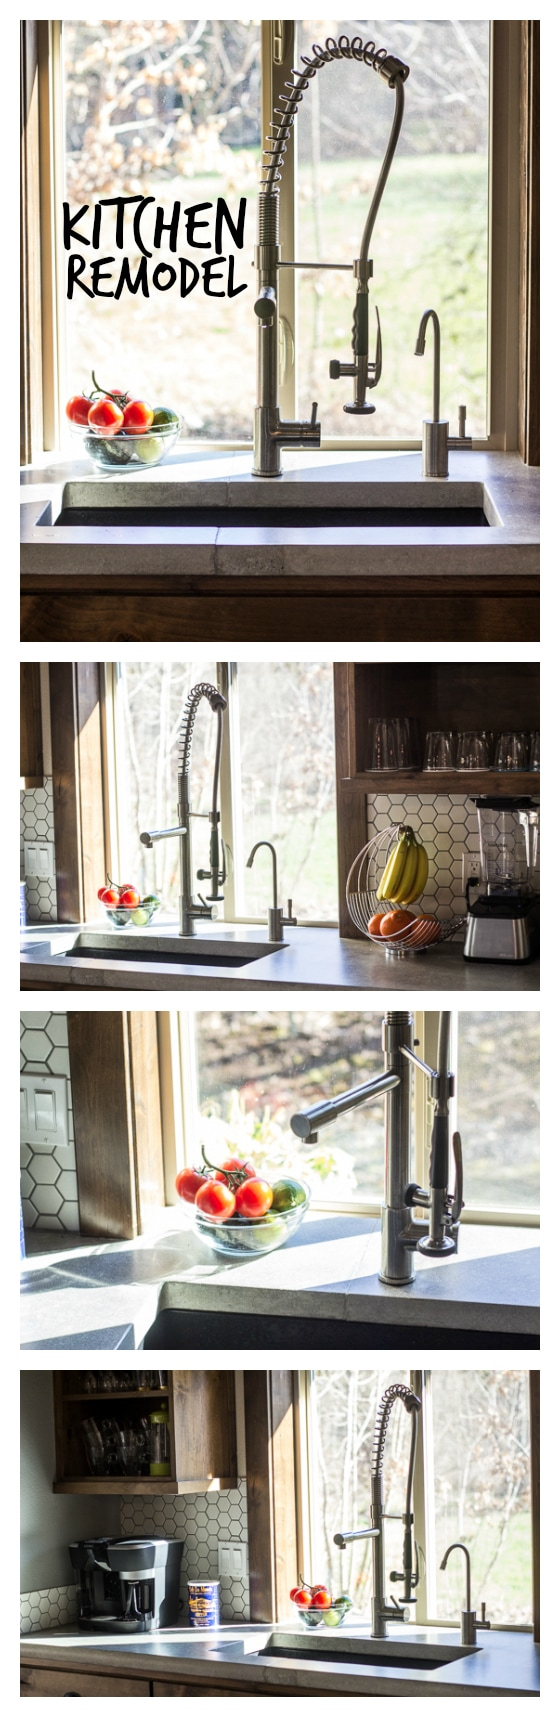 Kitchen Remodel - New Sink and Faucet!